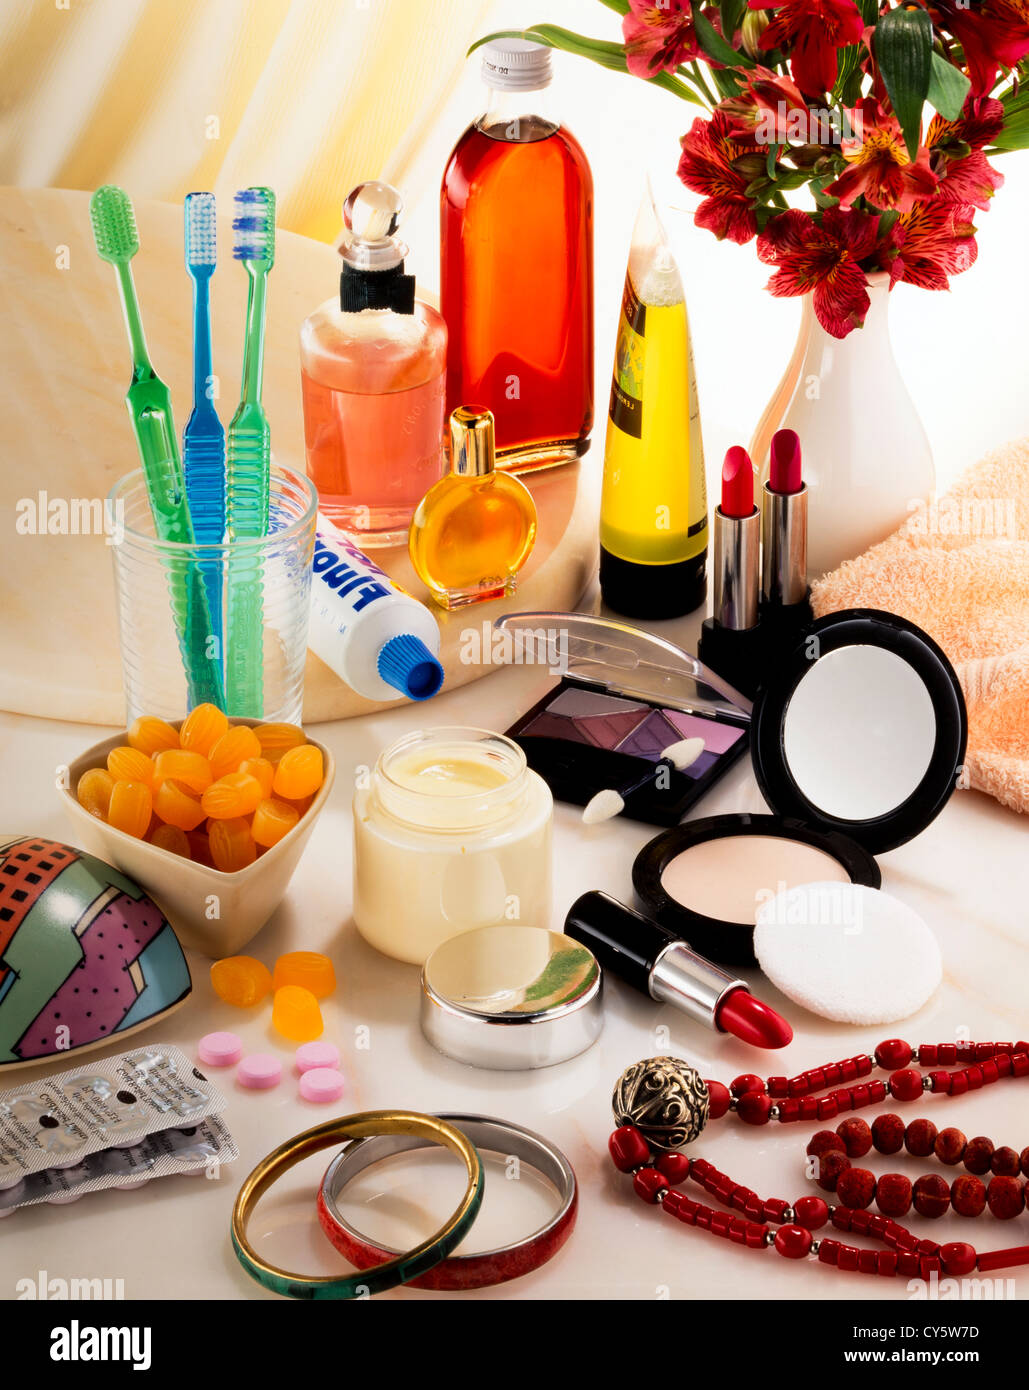 BEAUTY PRODUCTS AND TOILETRIES - Stock Image